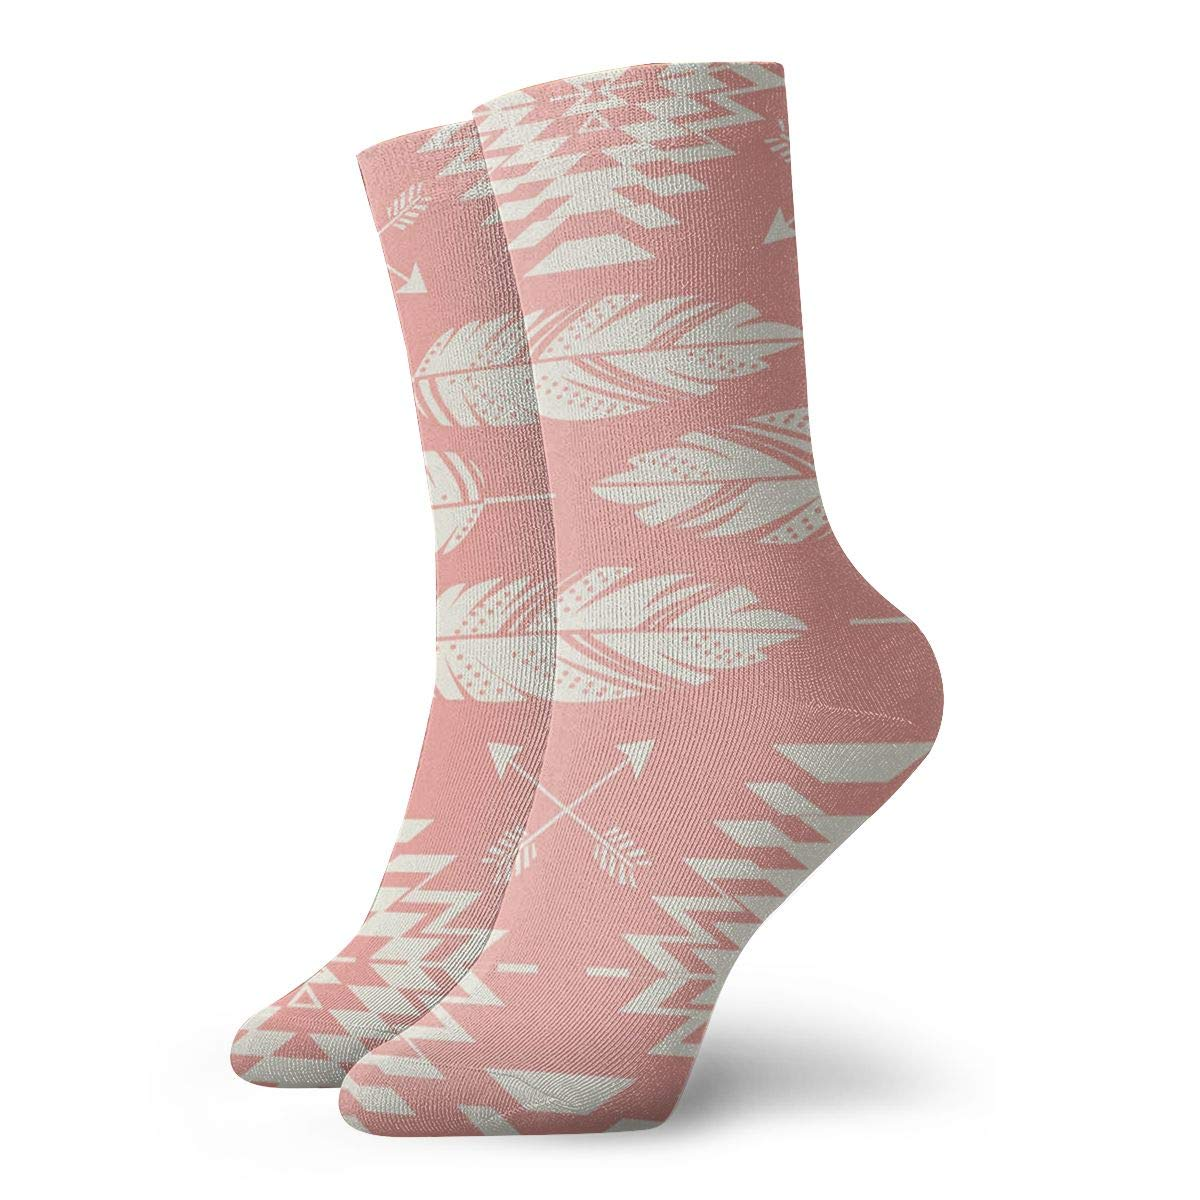 Arrow And Feather Unisex Funny Casual Crew Socks Athletic Socks For Boys Girls Kids Teenagers